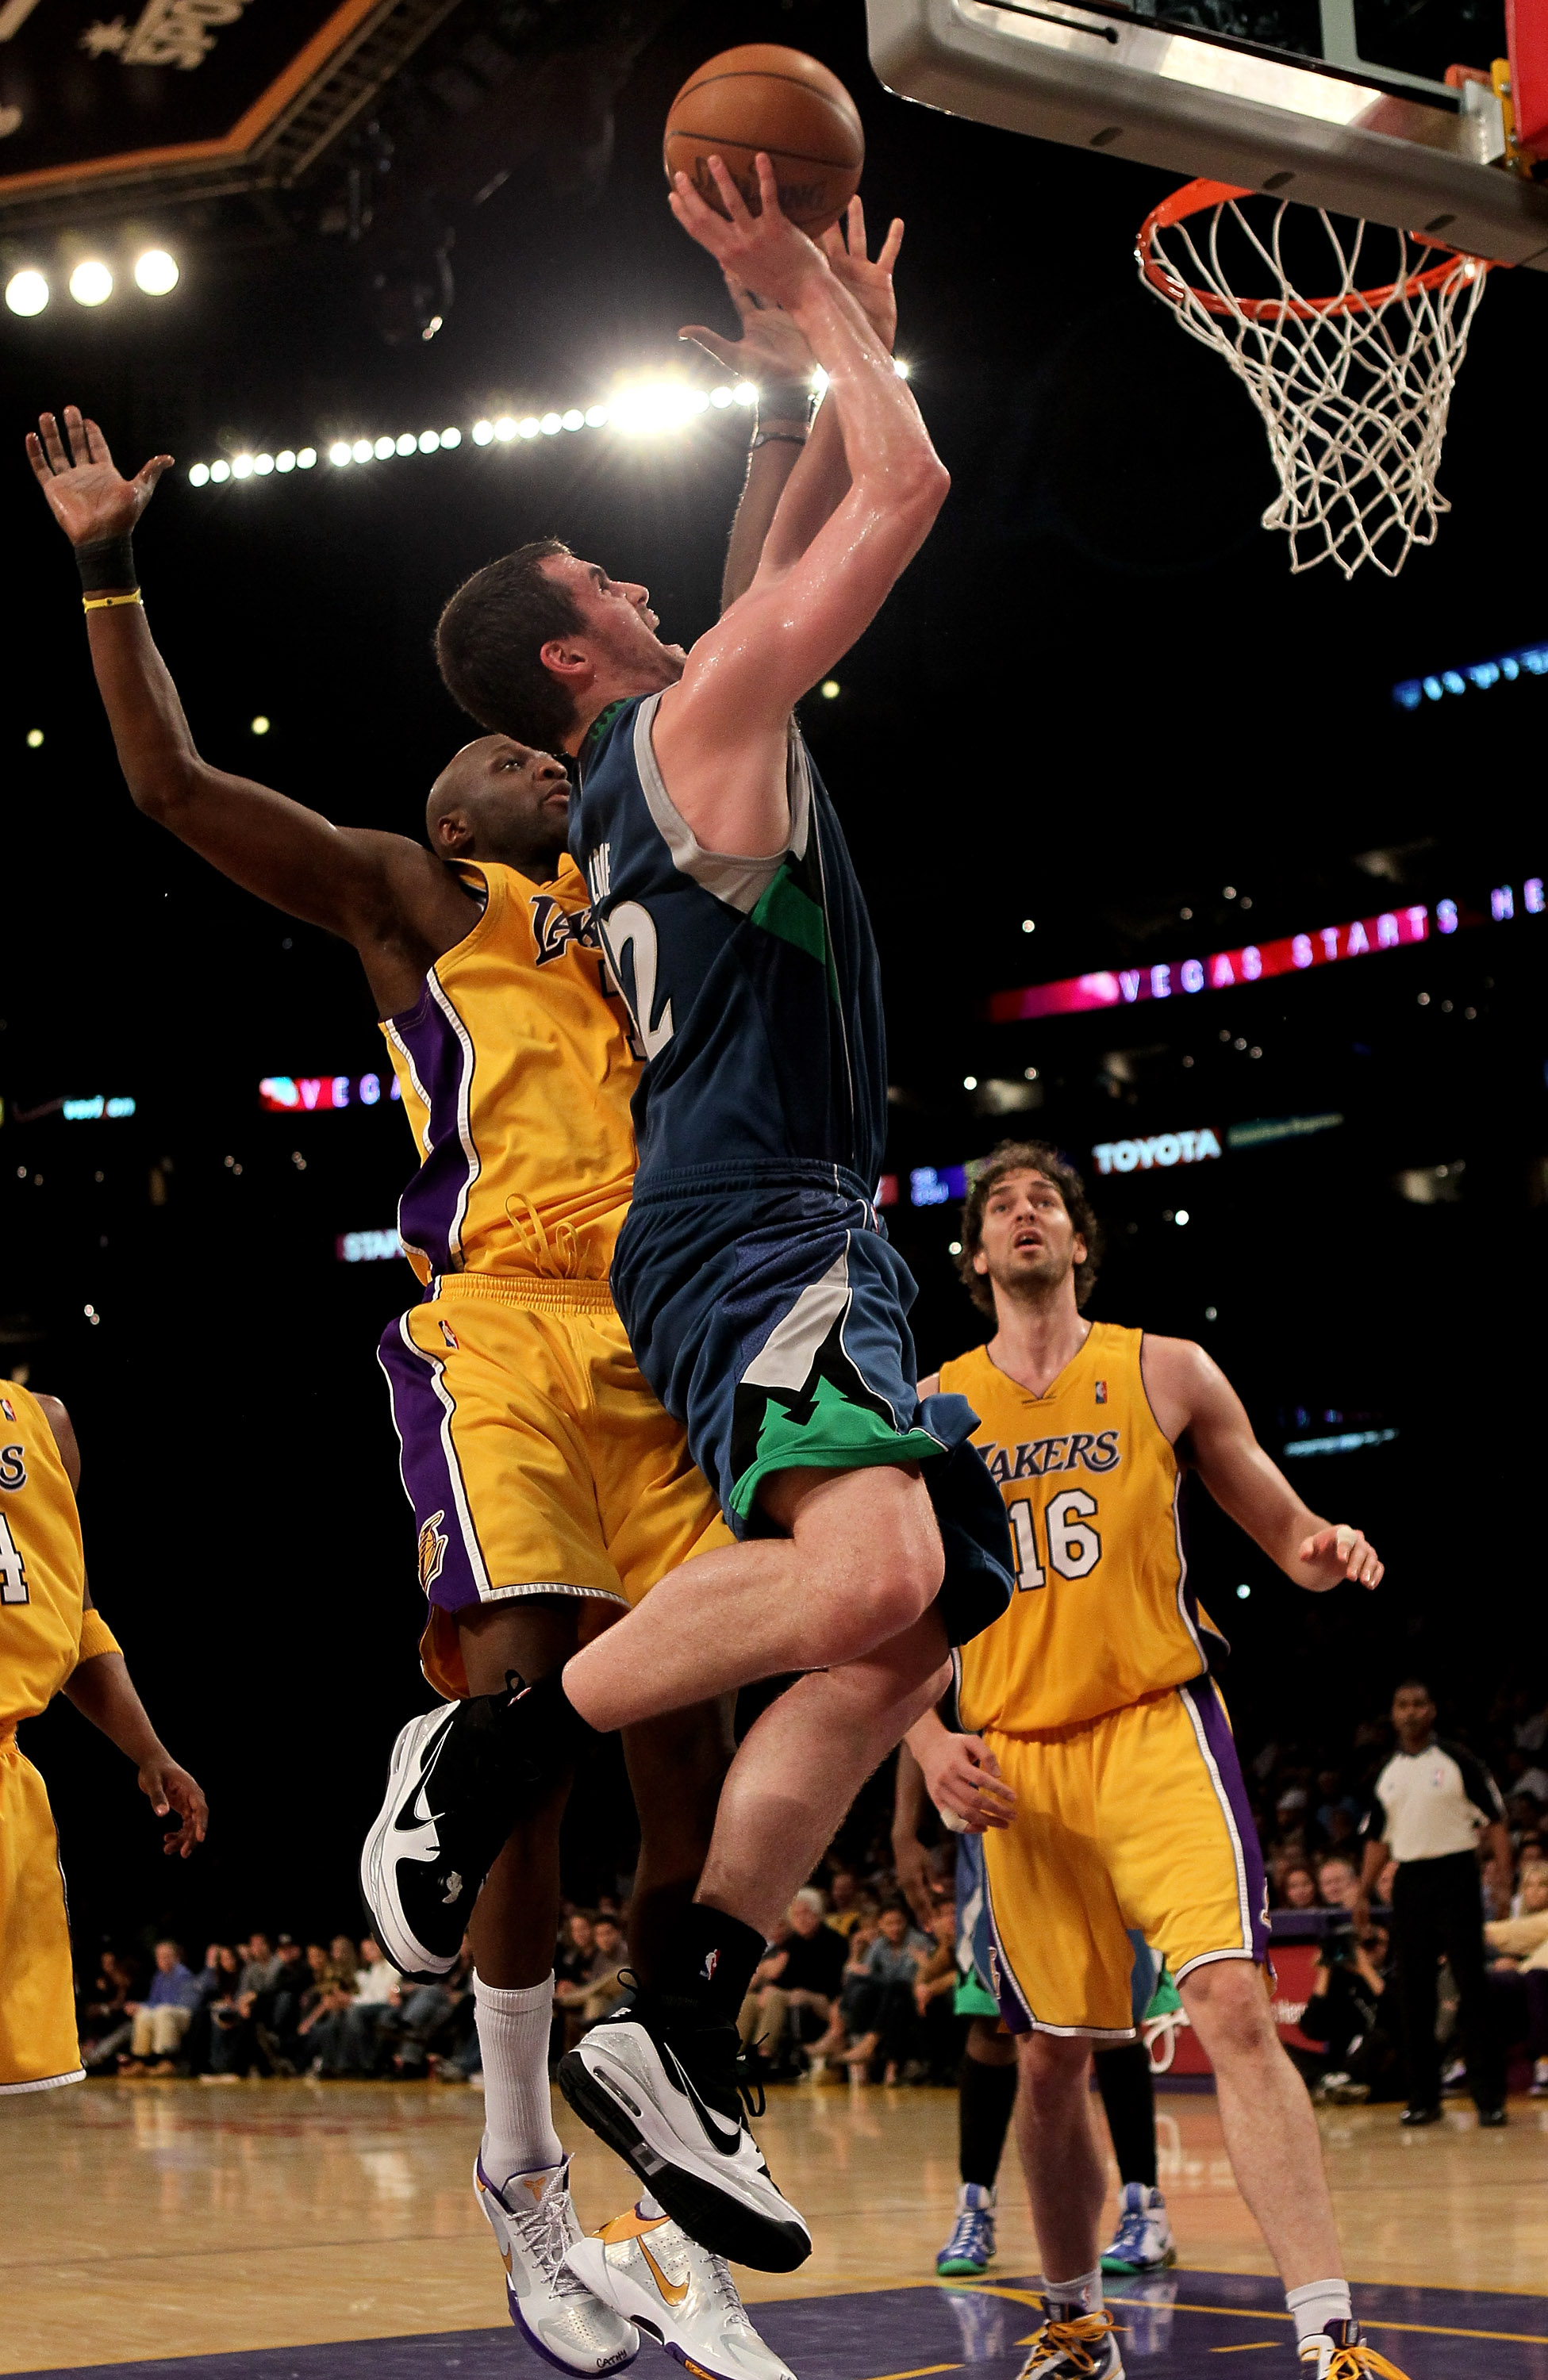 LOS ANGELES - MARCH 19:  Kevin LOve #42 of the Minnesota Timberwolves shoots over lamar Odom #7 of the Los Angeles Lakers on March 19, 2010 at Staples Center in Los Angeles, California.  The Lakeres won 104-96. NOTE TO USER: User expressly acknowledges an